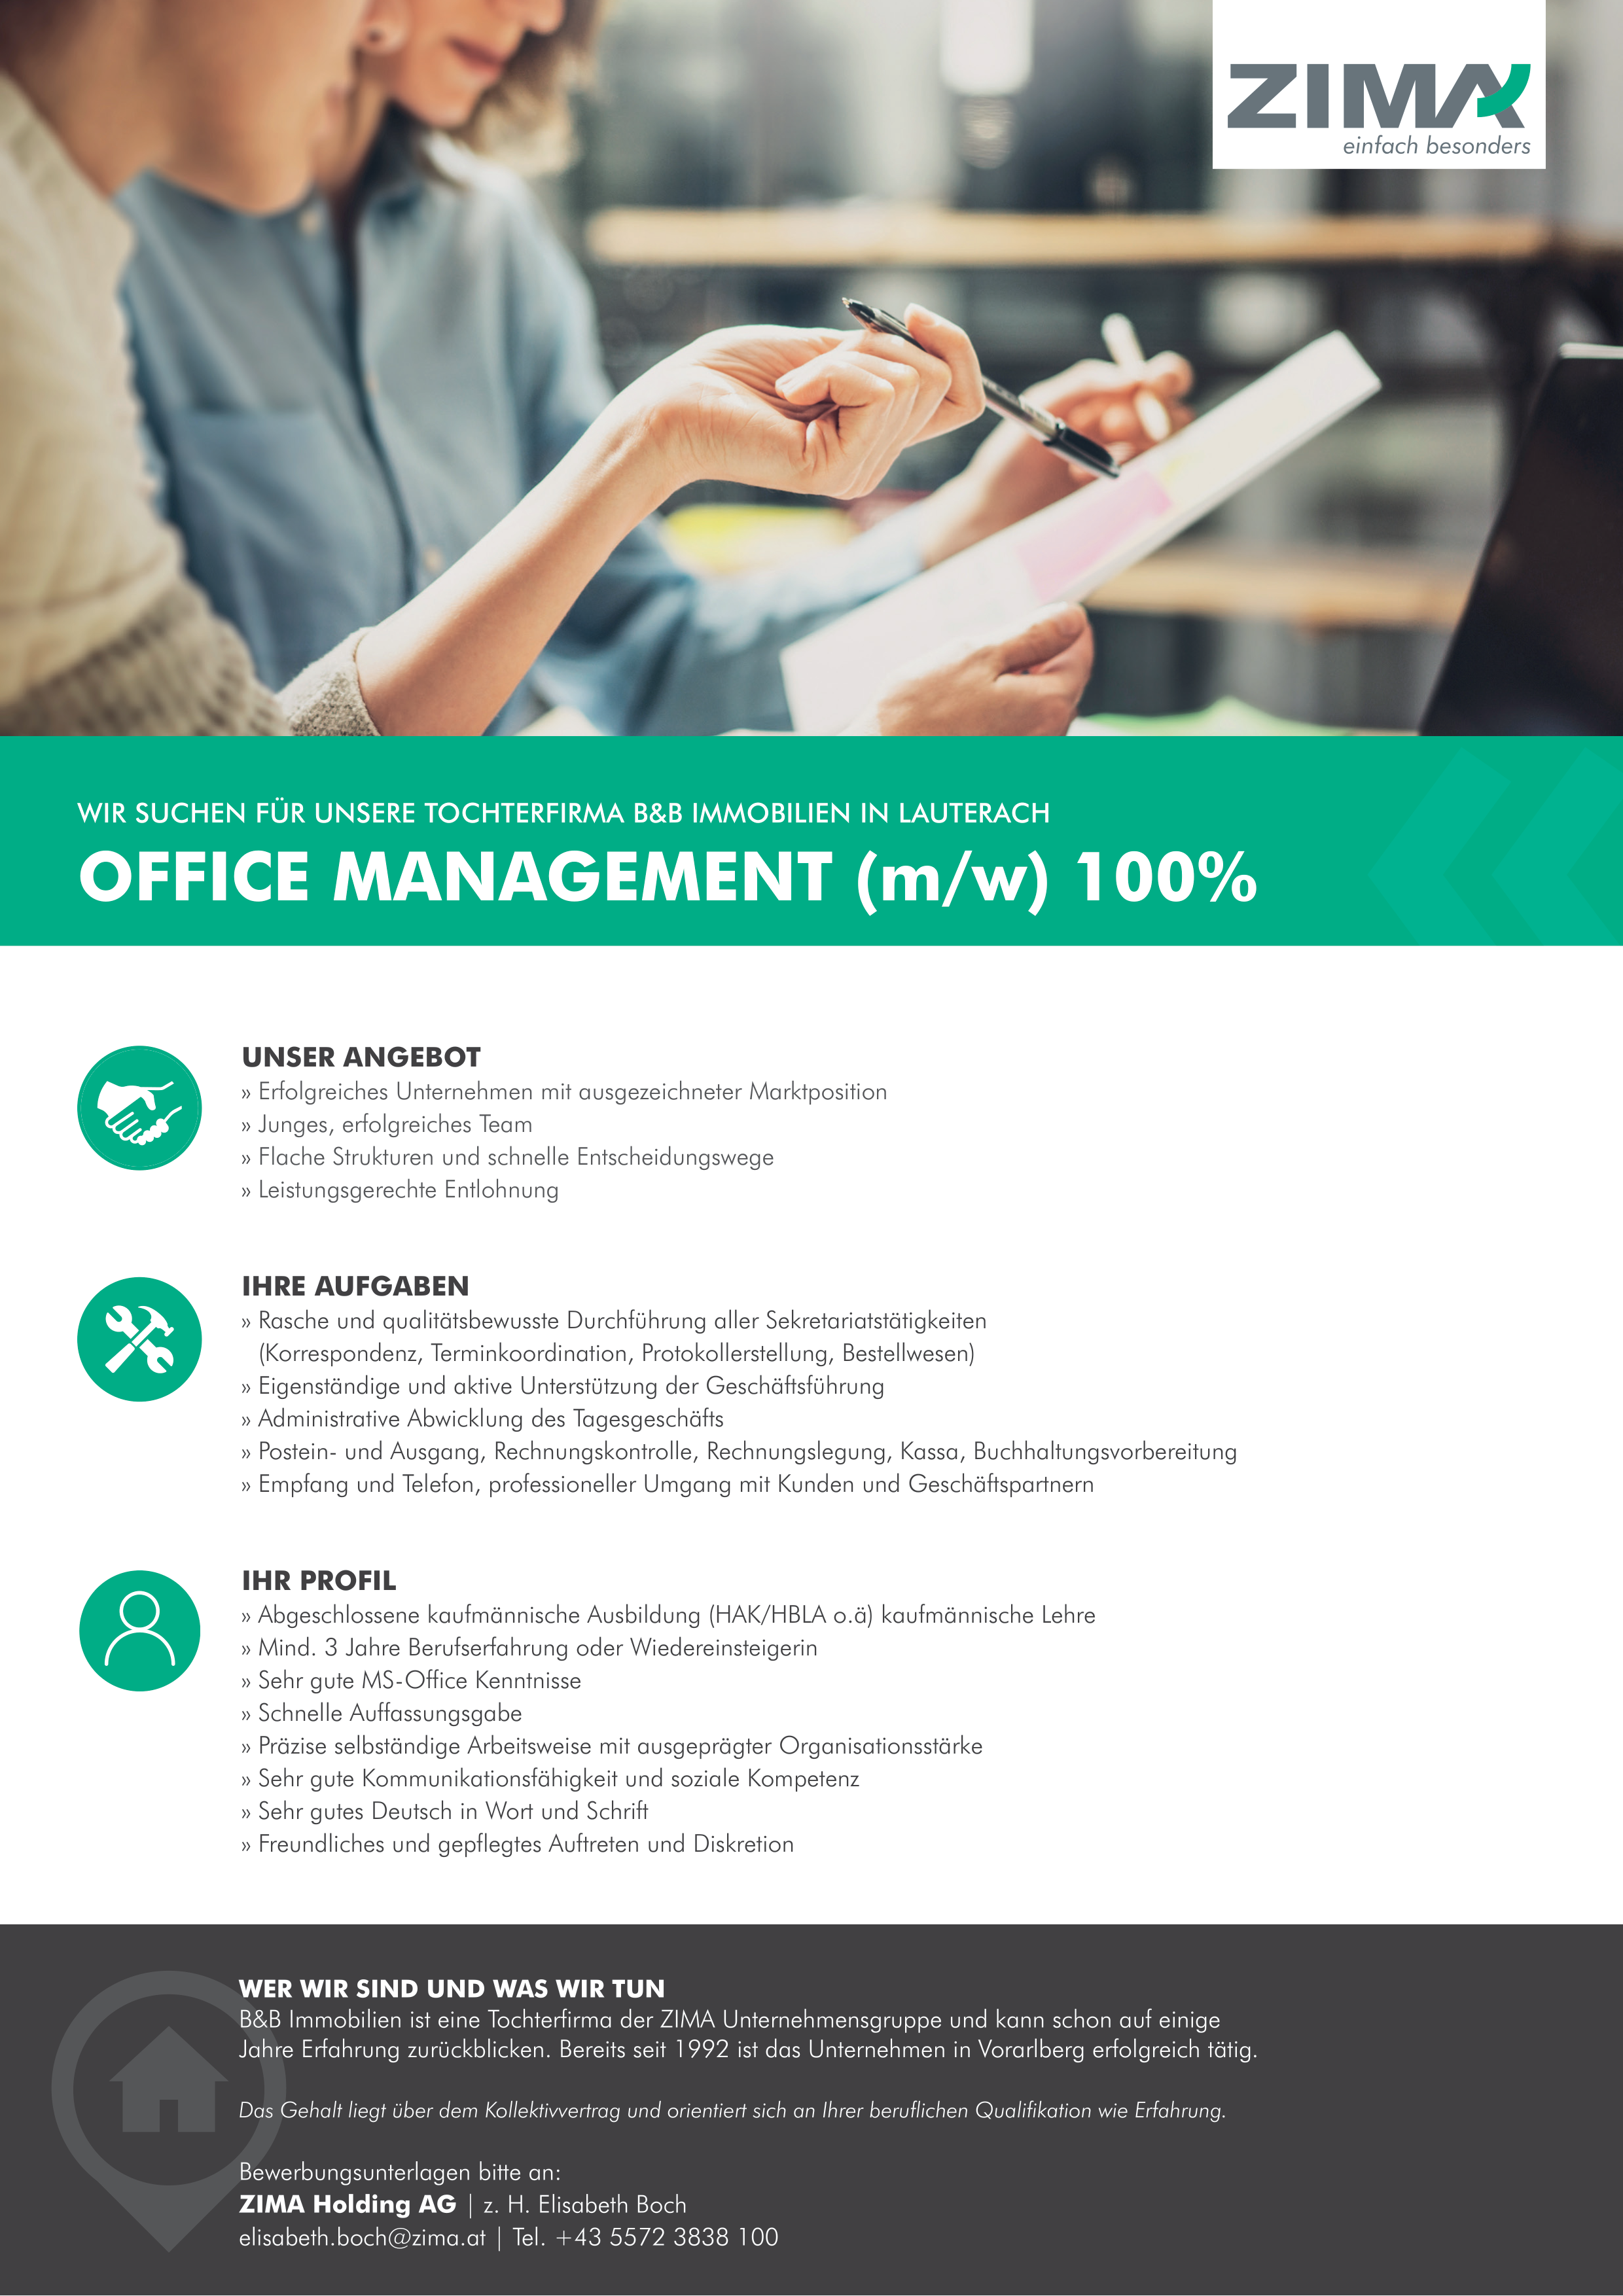 Office Management (m/w) 100%